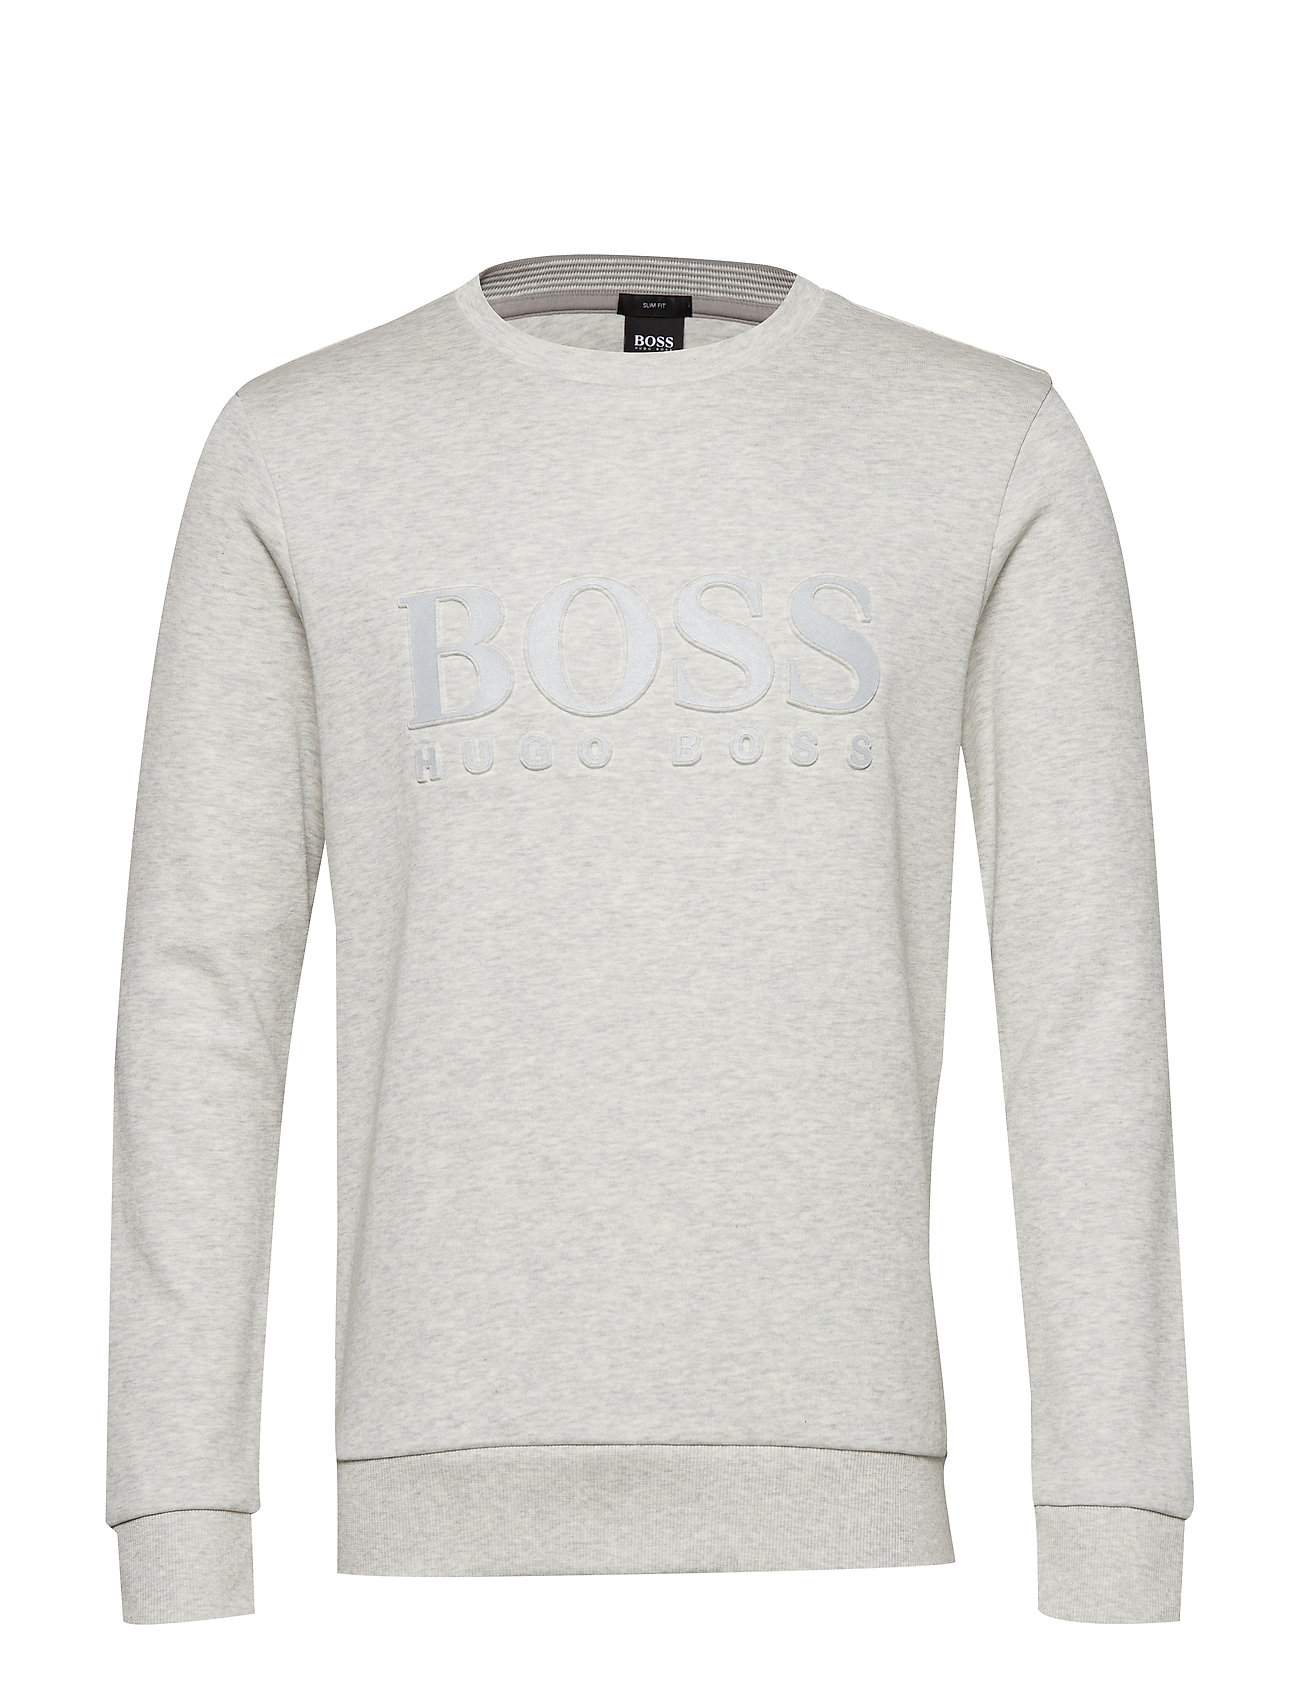 Salbo - Boss Athleisure Wear